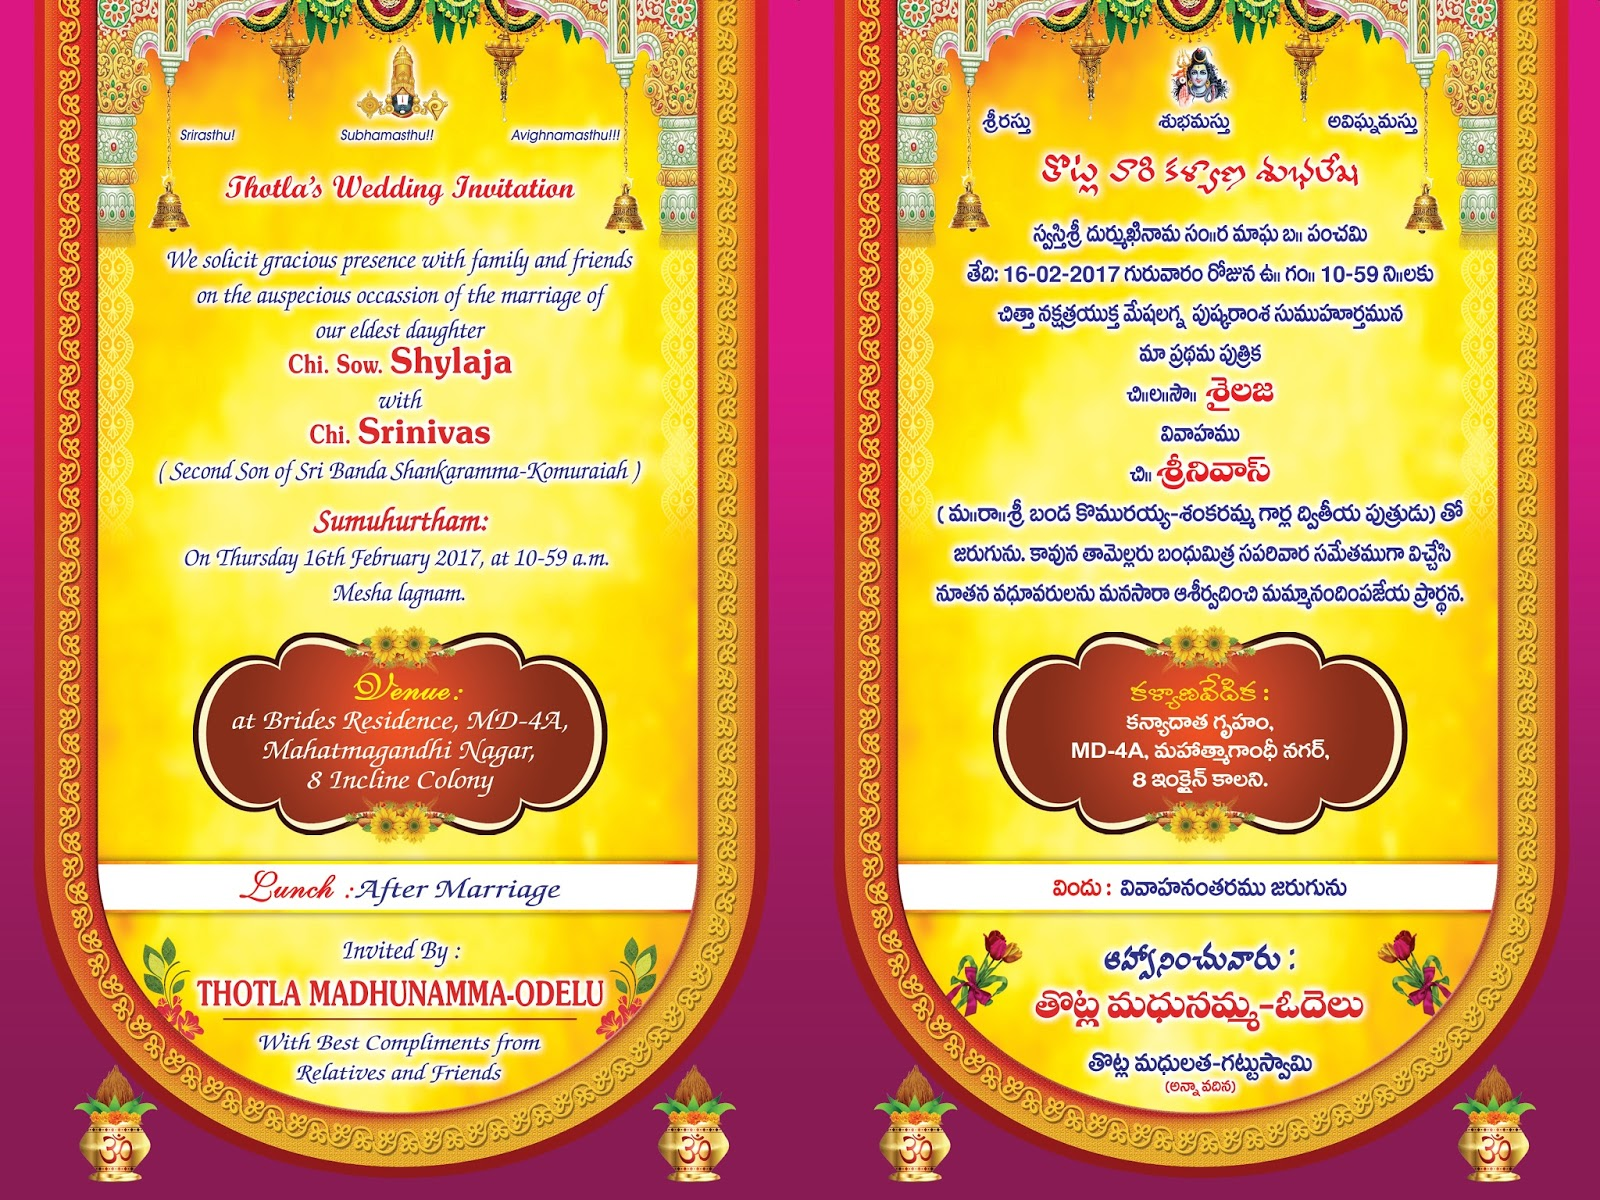 Indian wedding invitation card psd vector template free downloads wedding invitation card wording psd template free downloads stopboris Image collections